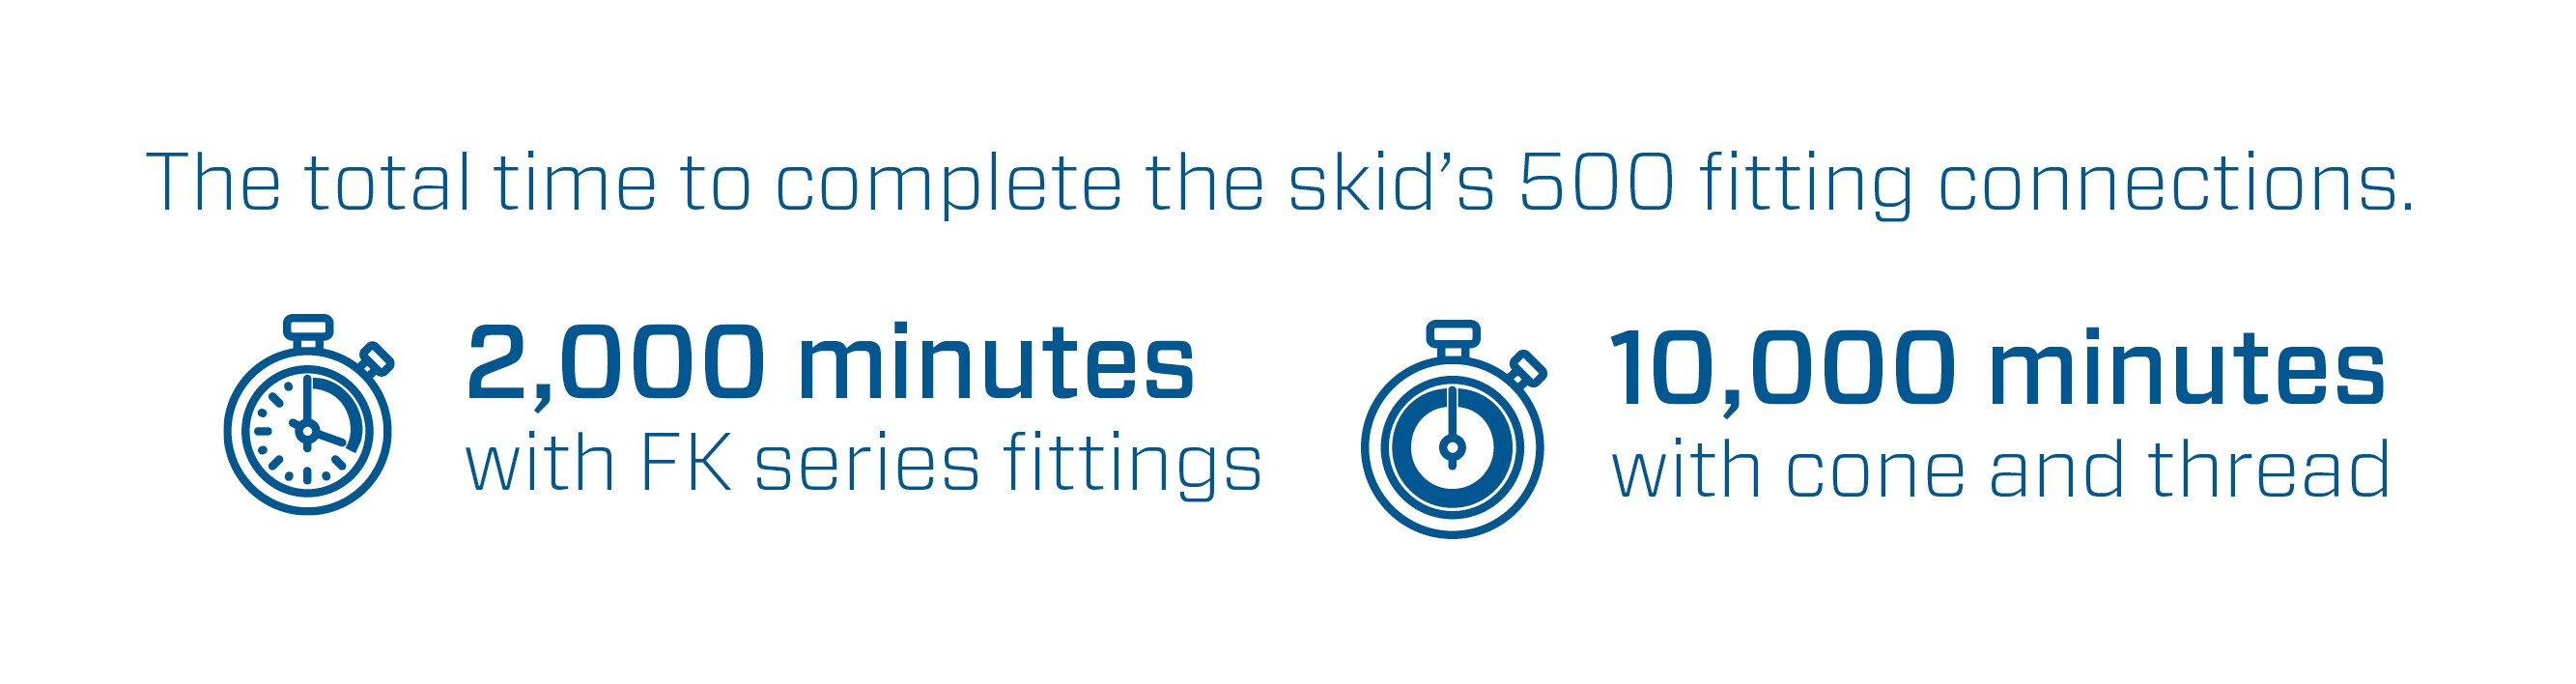 FK Series Fittings Time Savings Infographic